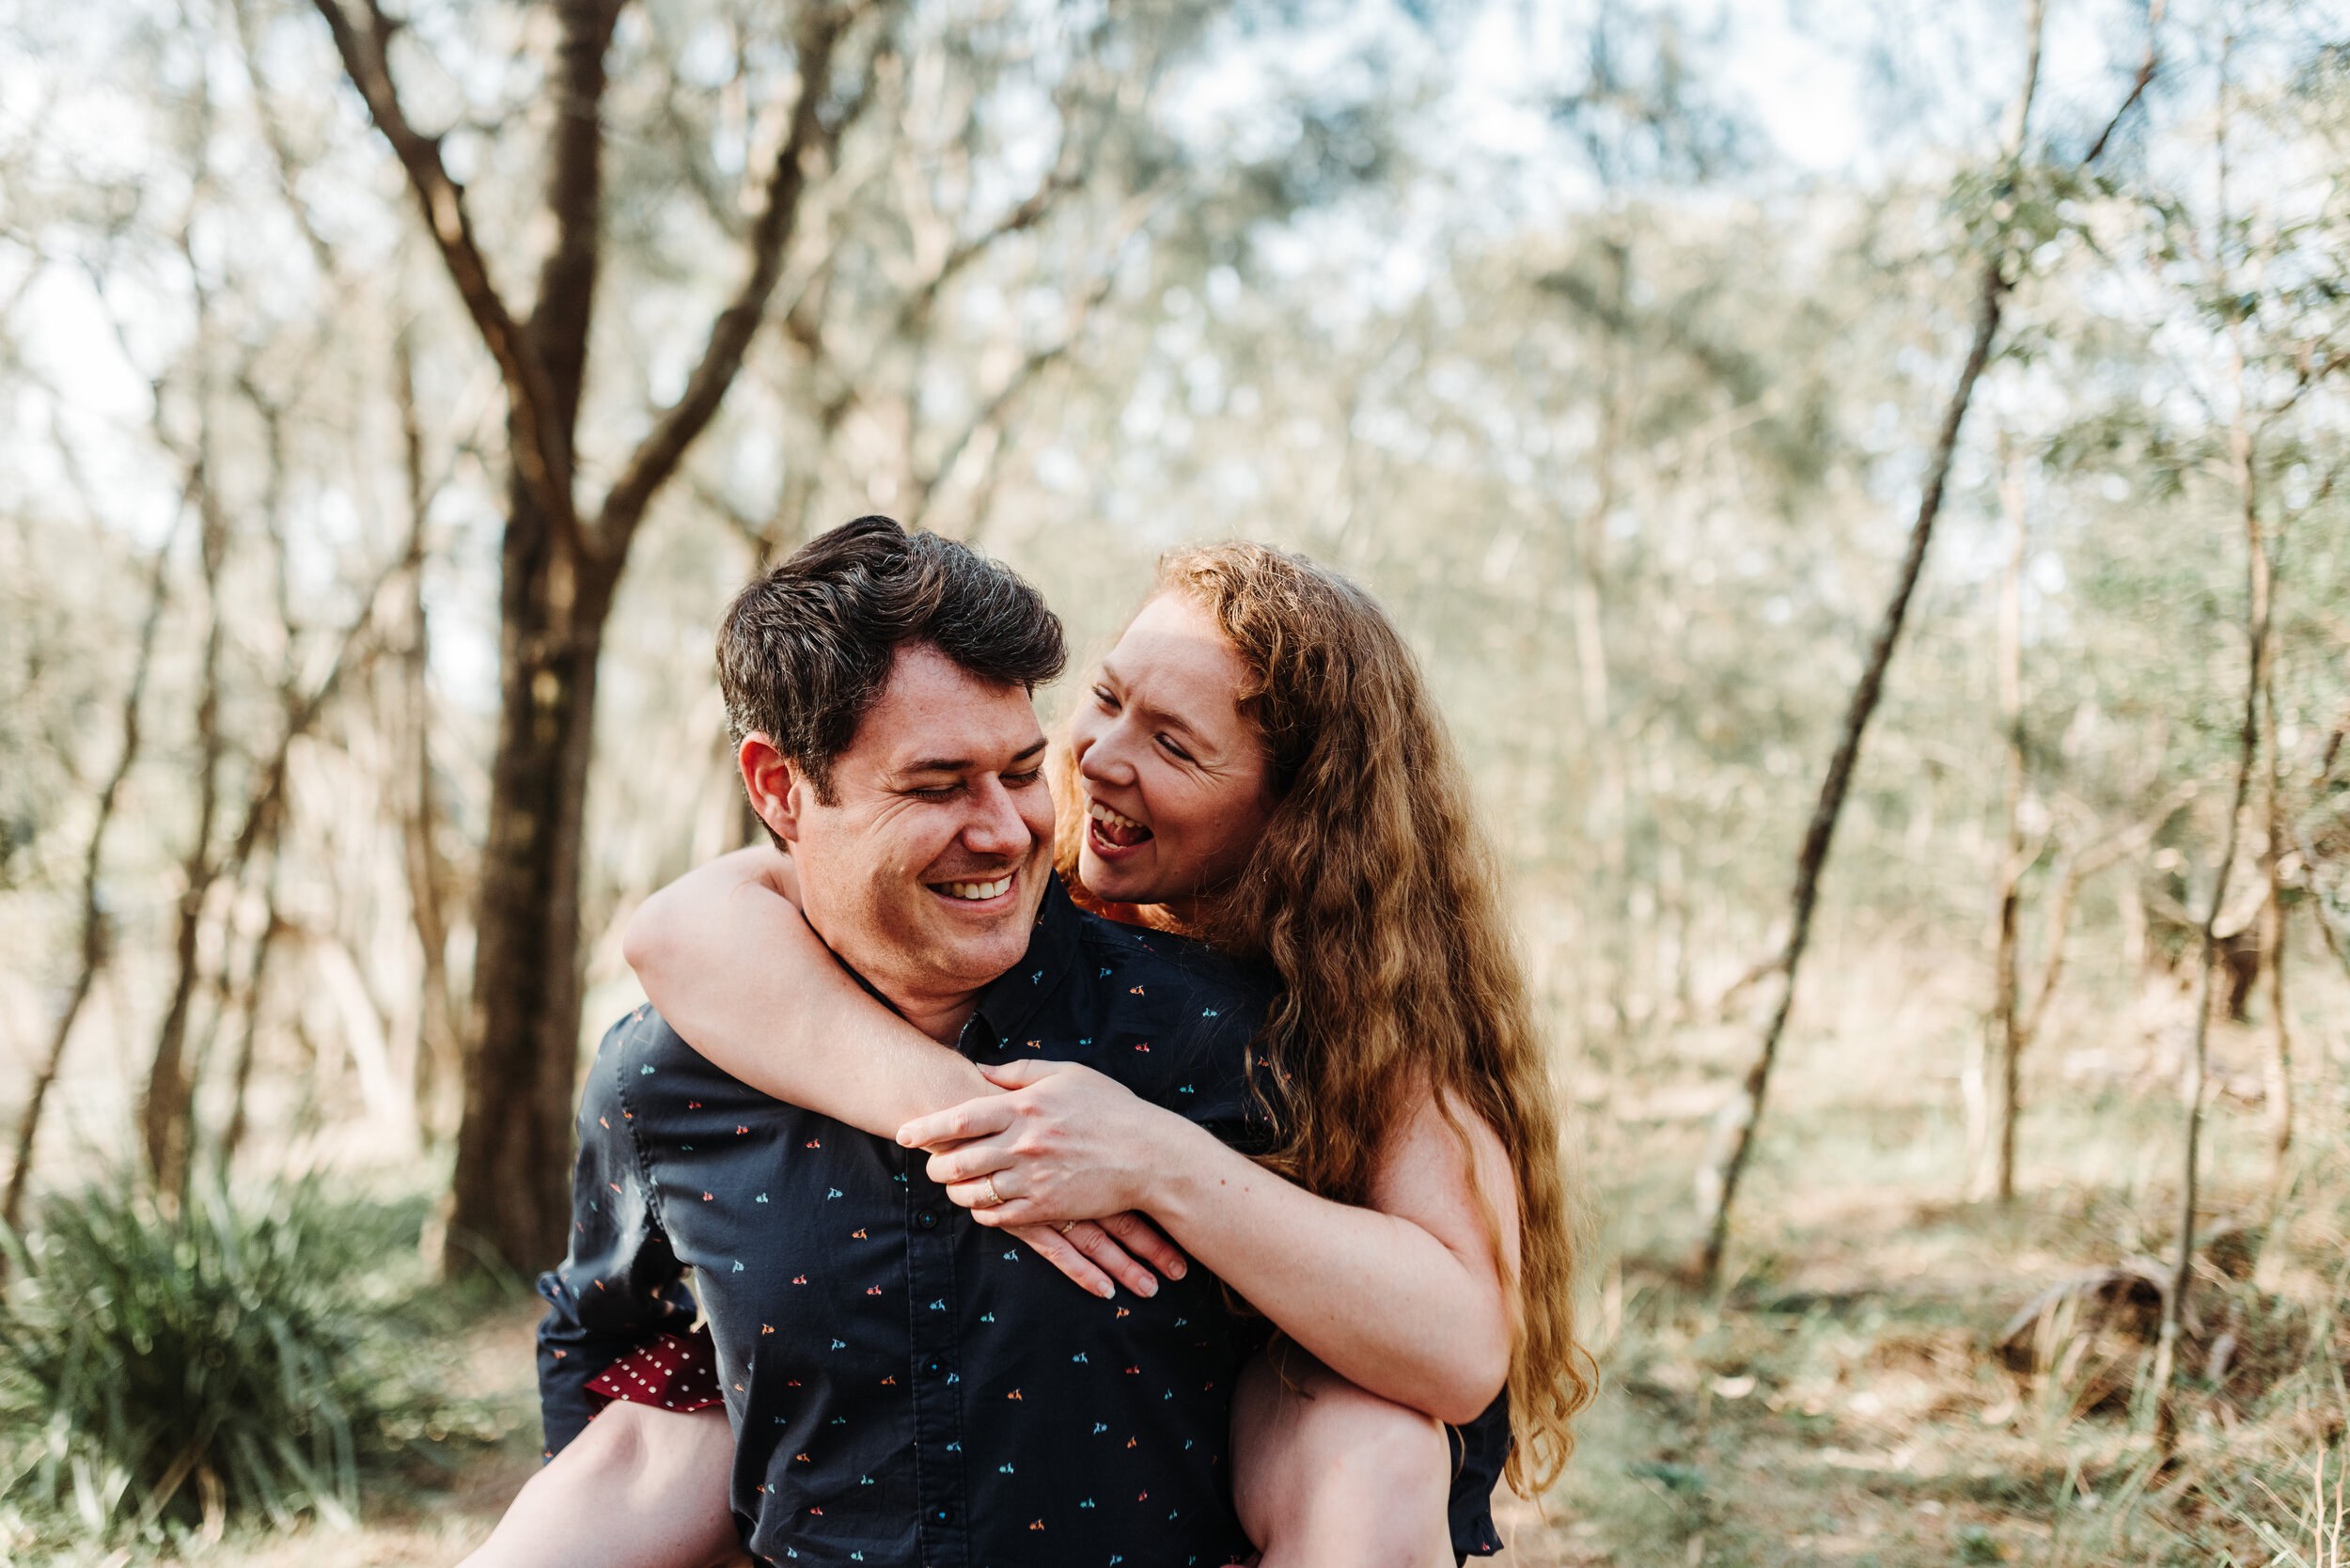 Dayle & Tarrant - Puckey's Estate, Wollongong Engagement    13th September 2019